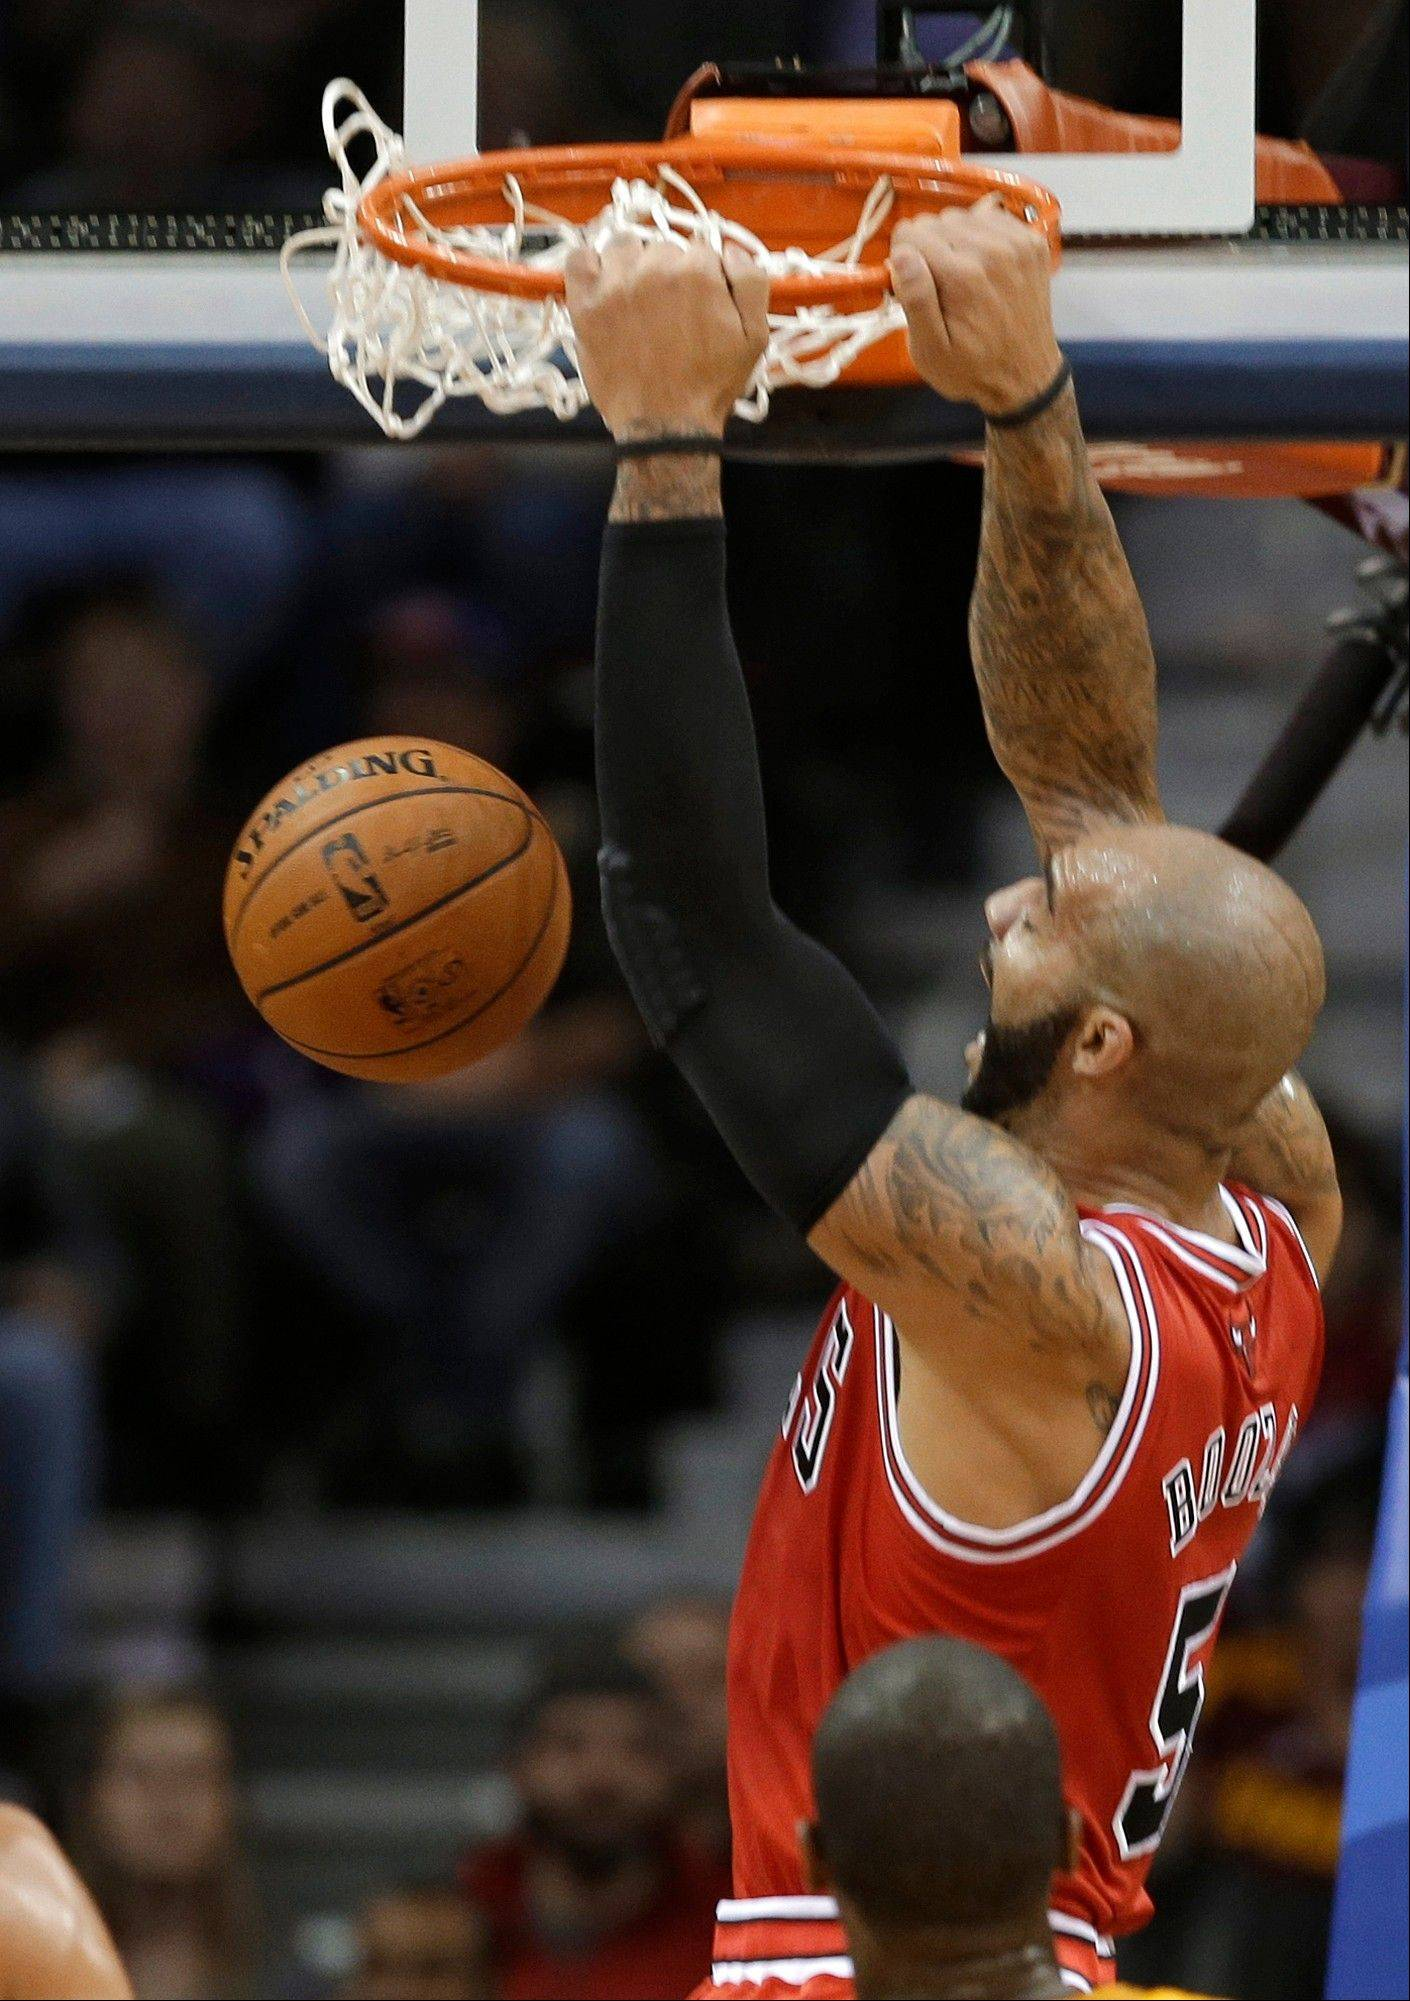 Chicago Bulls' Carlos Boozer dunks against the Cleveland Cavaliers in the first quarter of an NBA basketball game Friday, Nov. 2, 2012, in Cleveland.